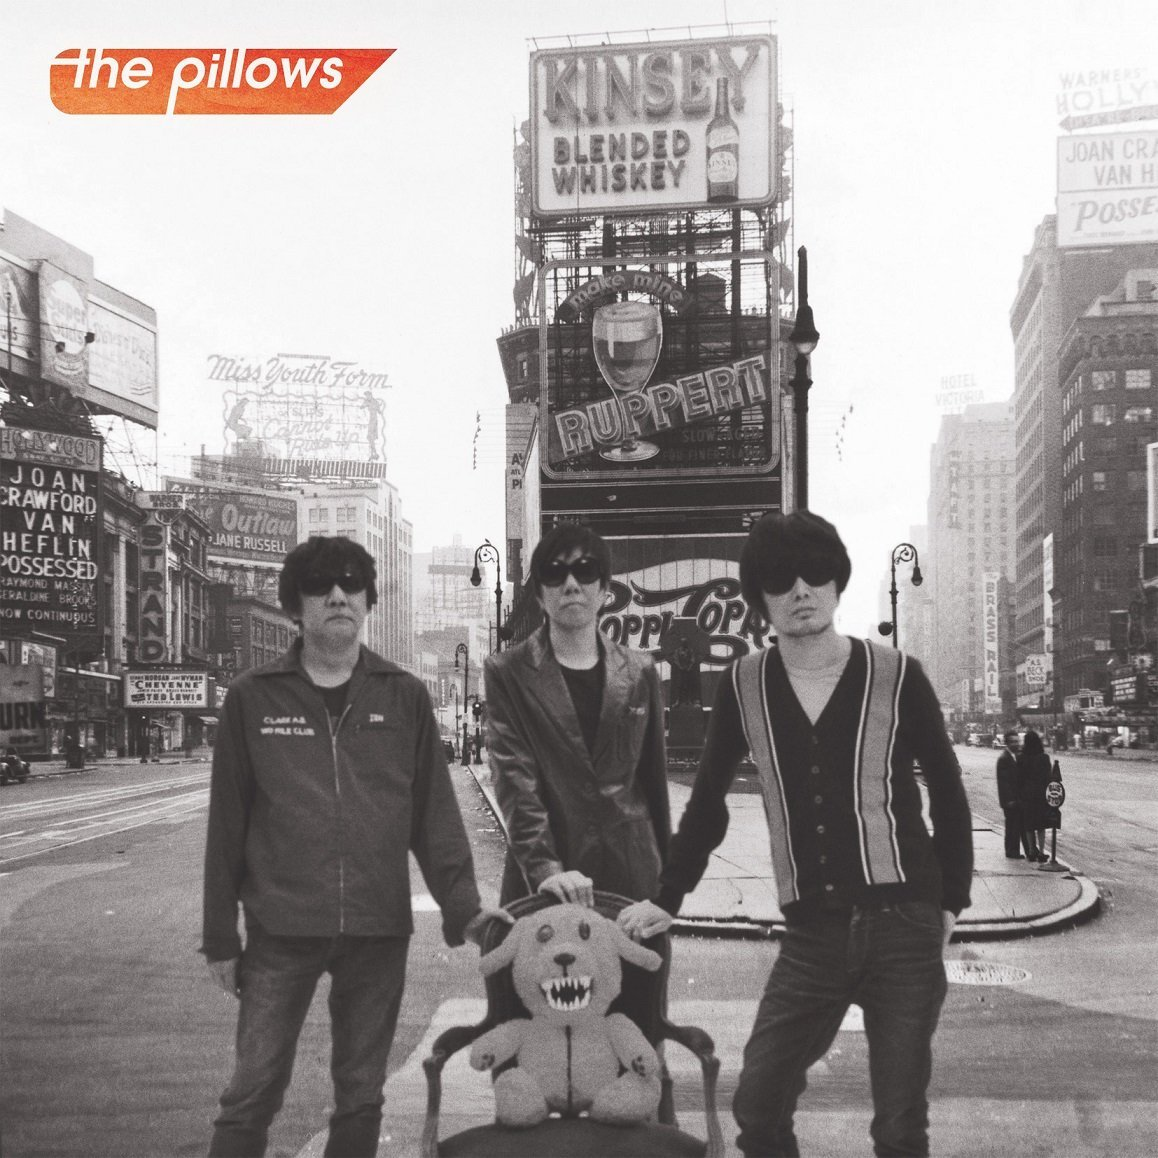 the pillows - About A Rock'n'R...